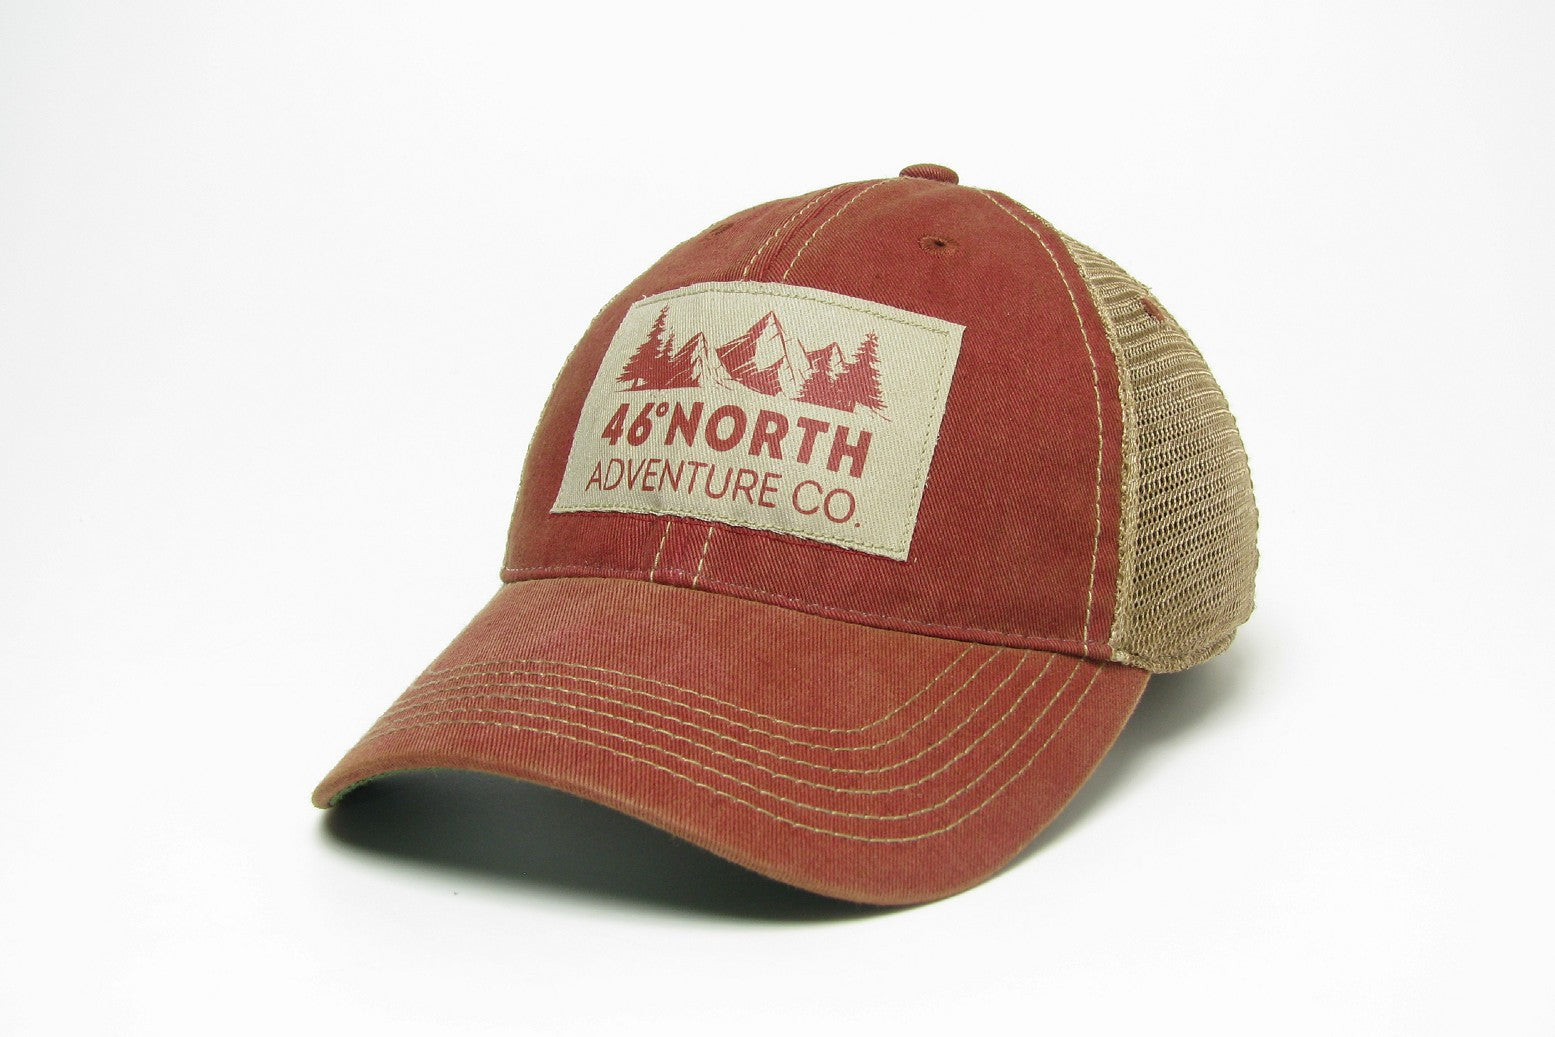 46North Adventure Hat